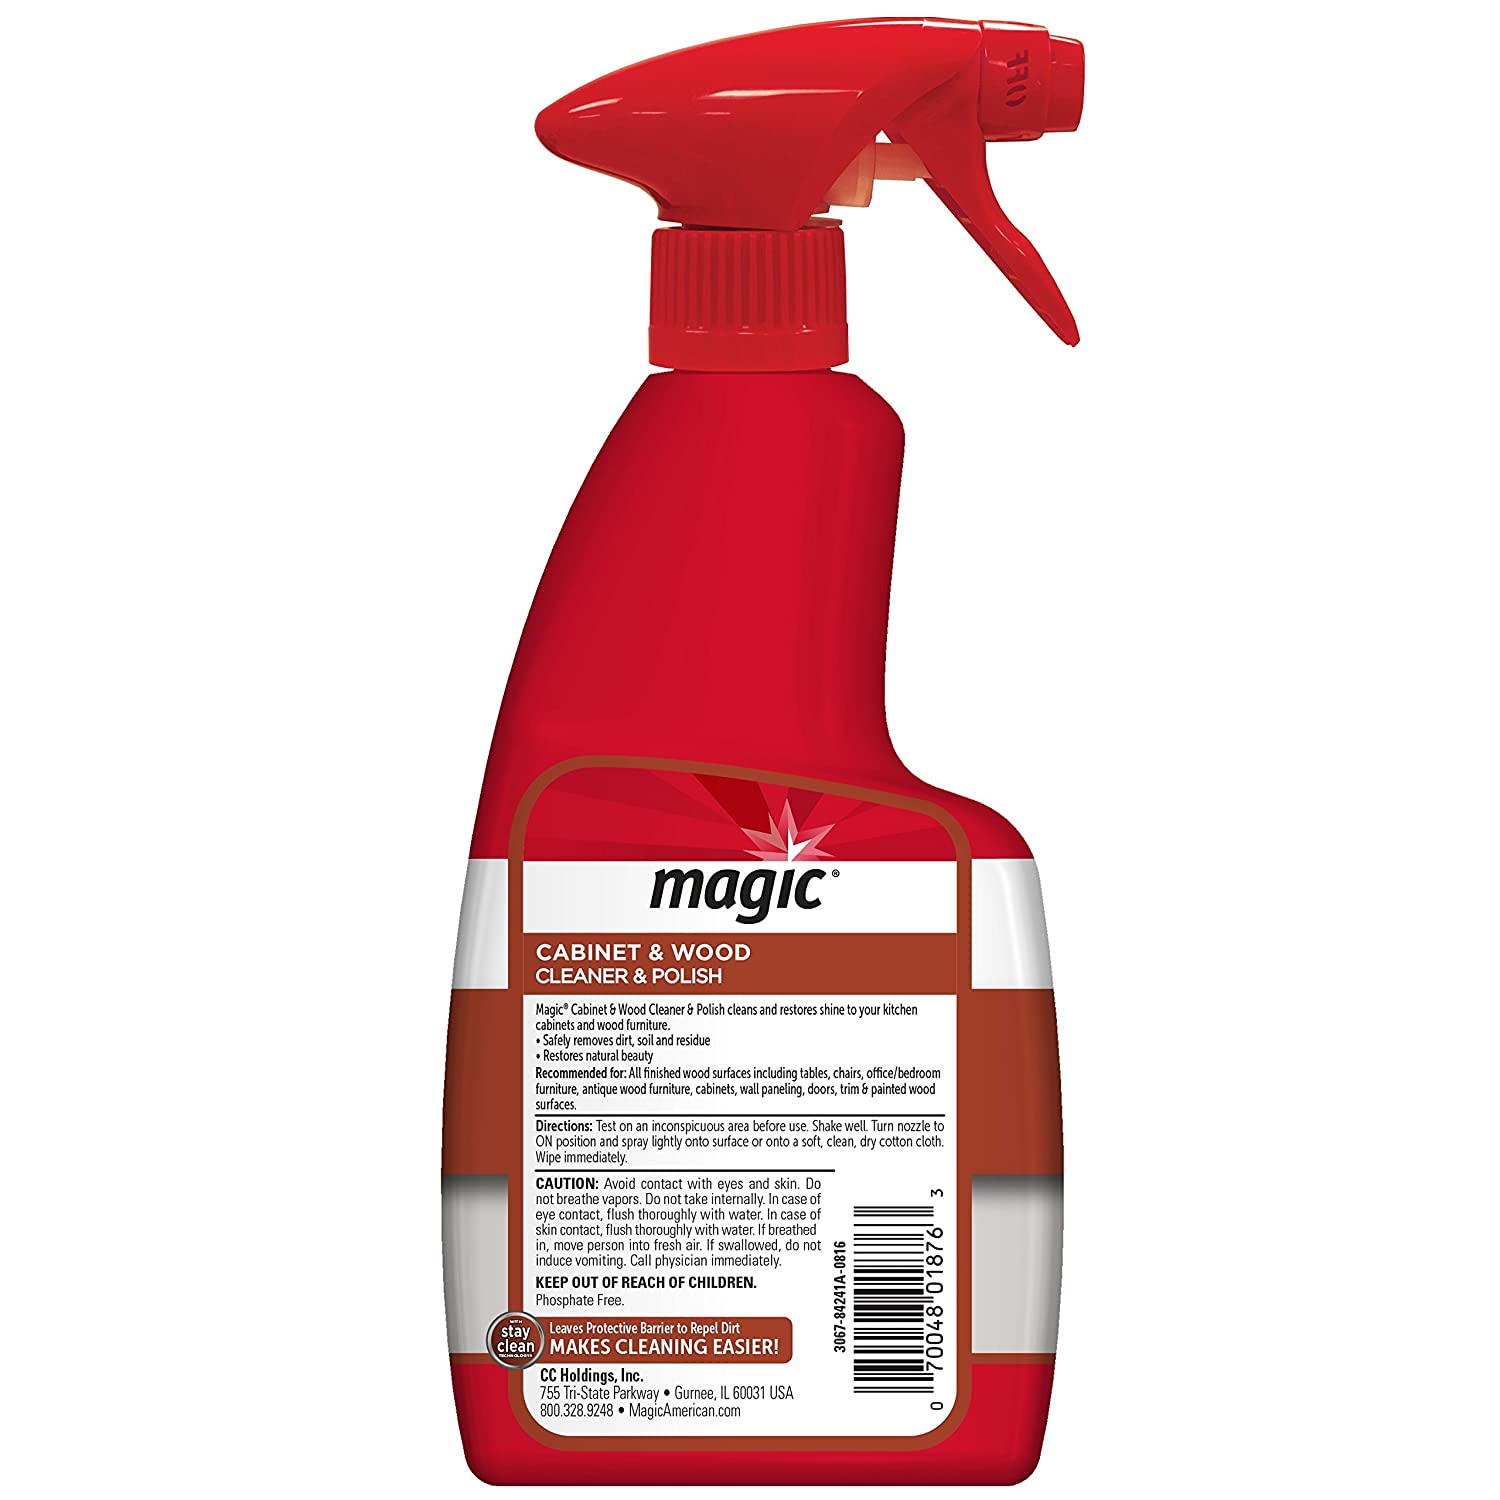 Amazon.com: Magic Cabinet & Wood Clean & Shine, 14 fl oz: Health ...